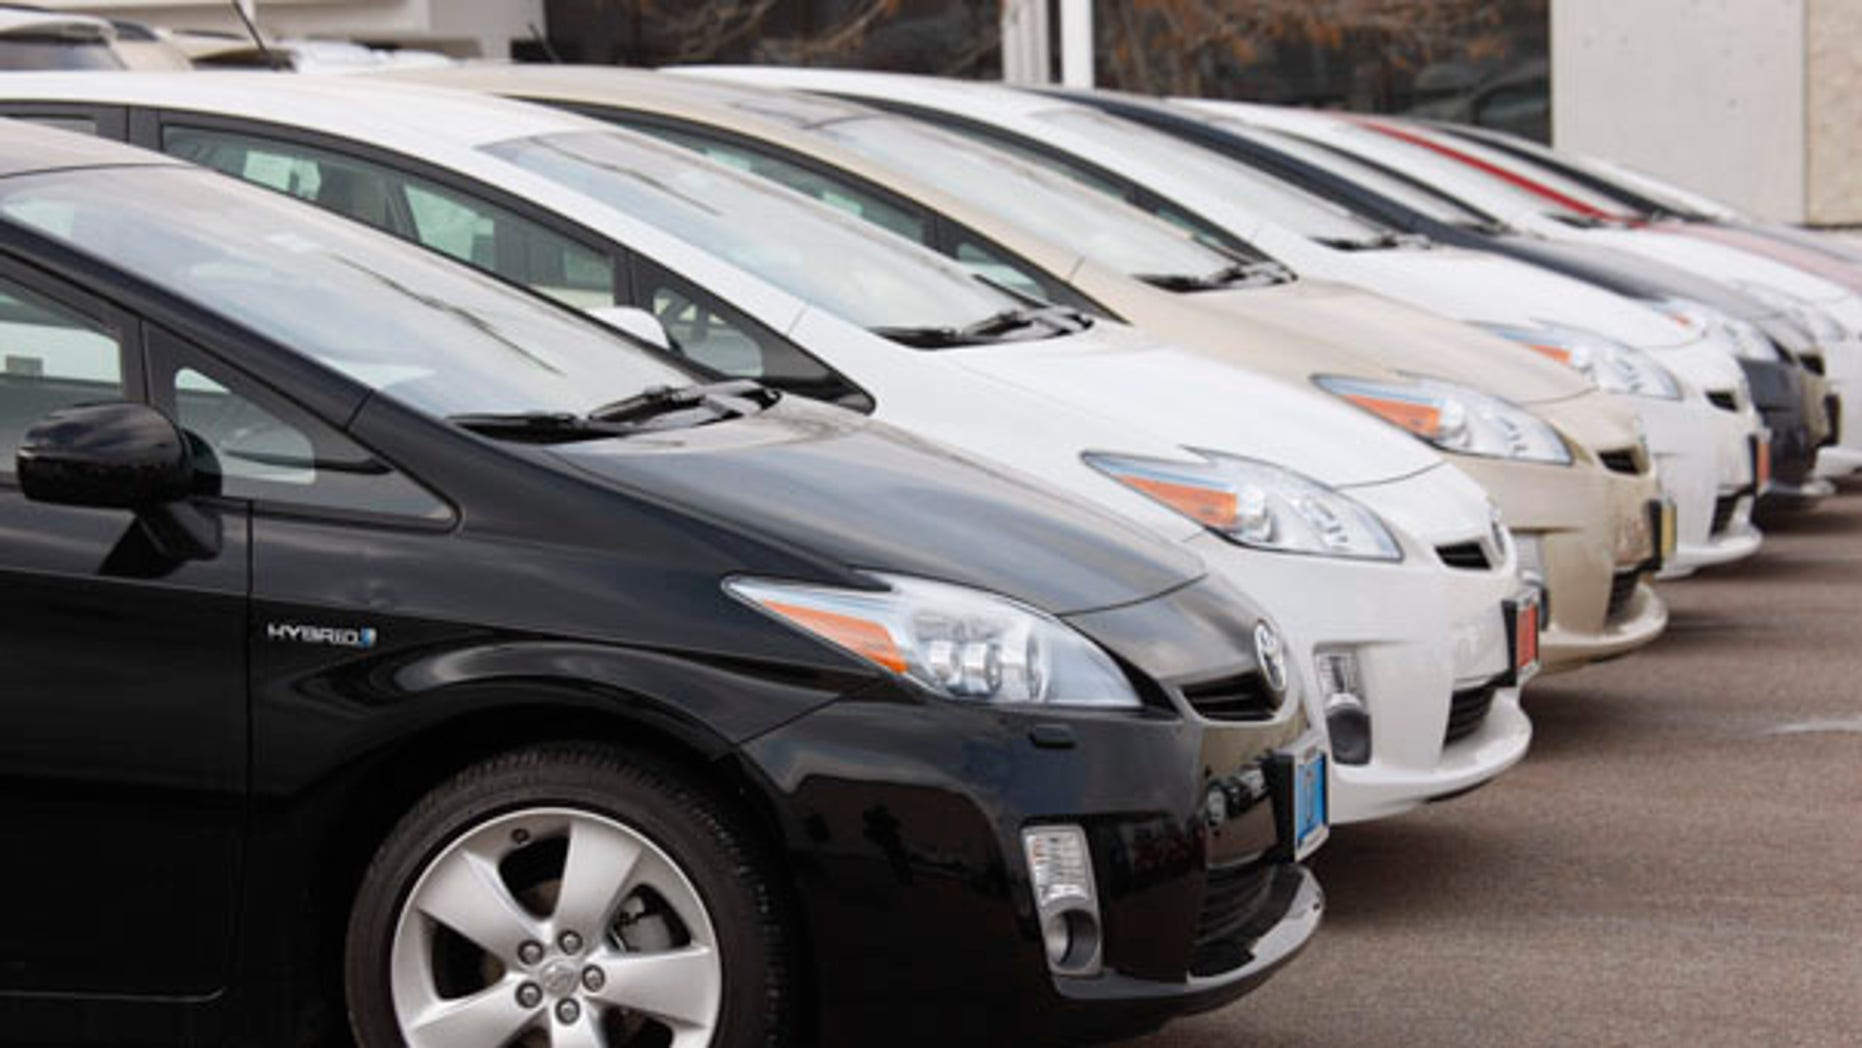 A Department of Transportation analysis found that in the dozens of accidents involving Toyota vehicles that had been blamed on sudden acceleration, the brakes were not engaged at all.